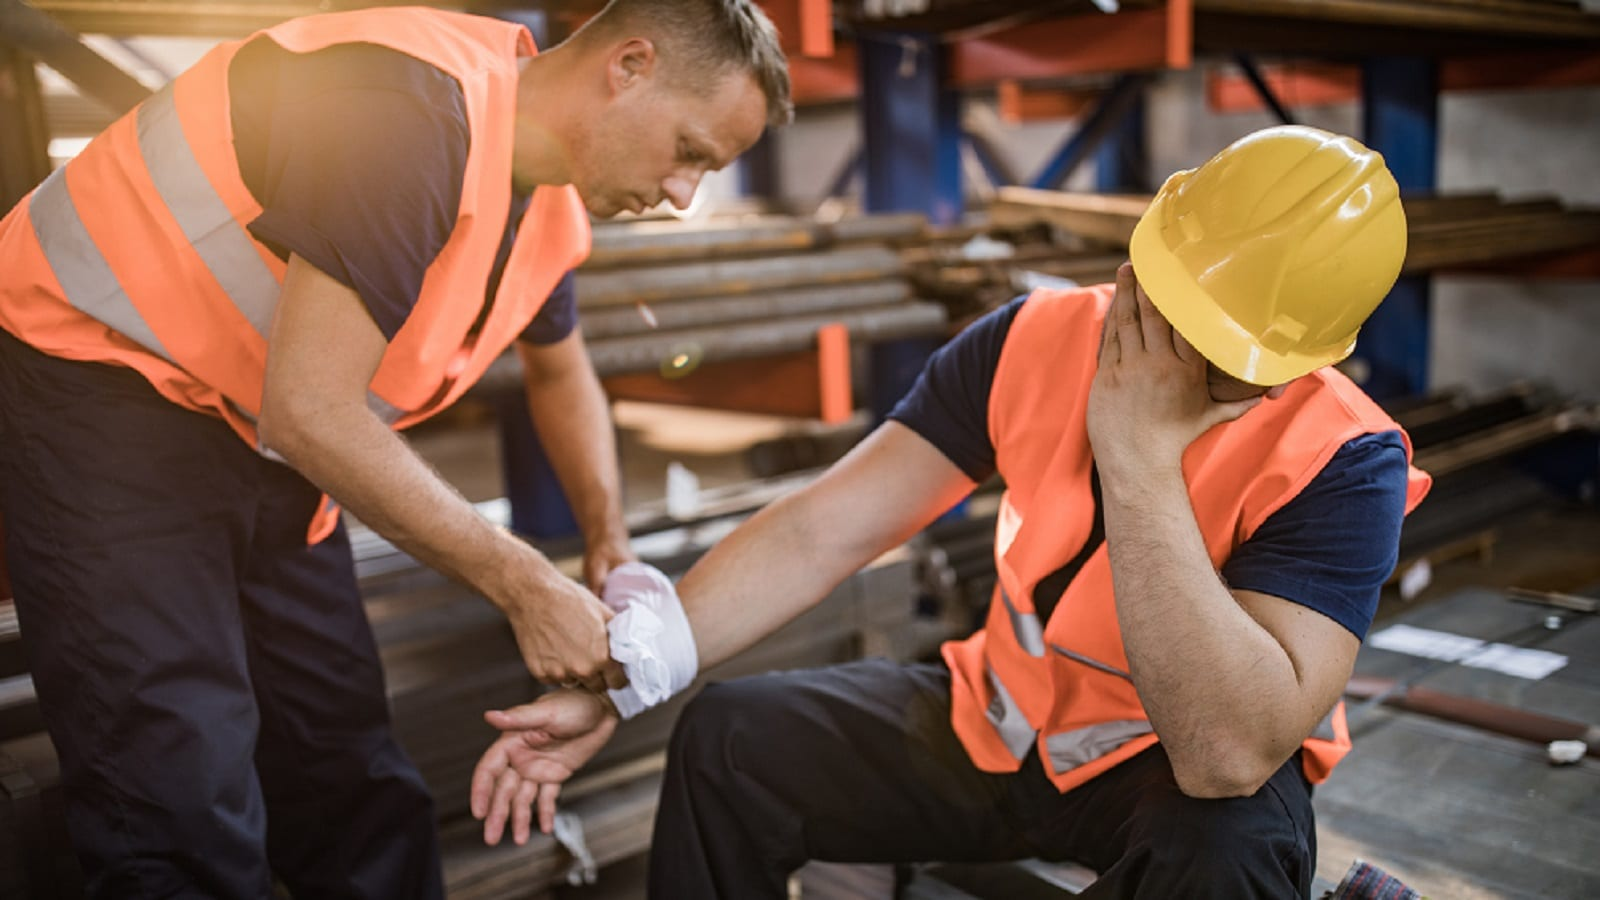 Injured Construction Worker Stock Photo